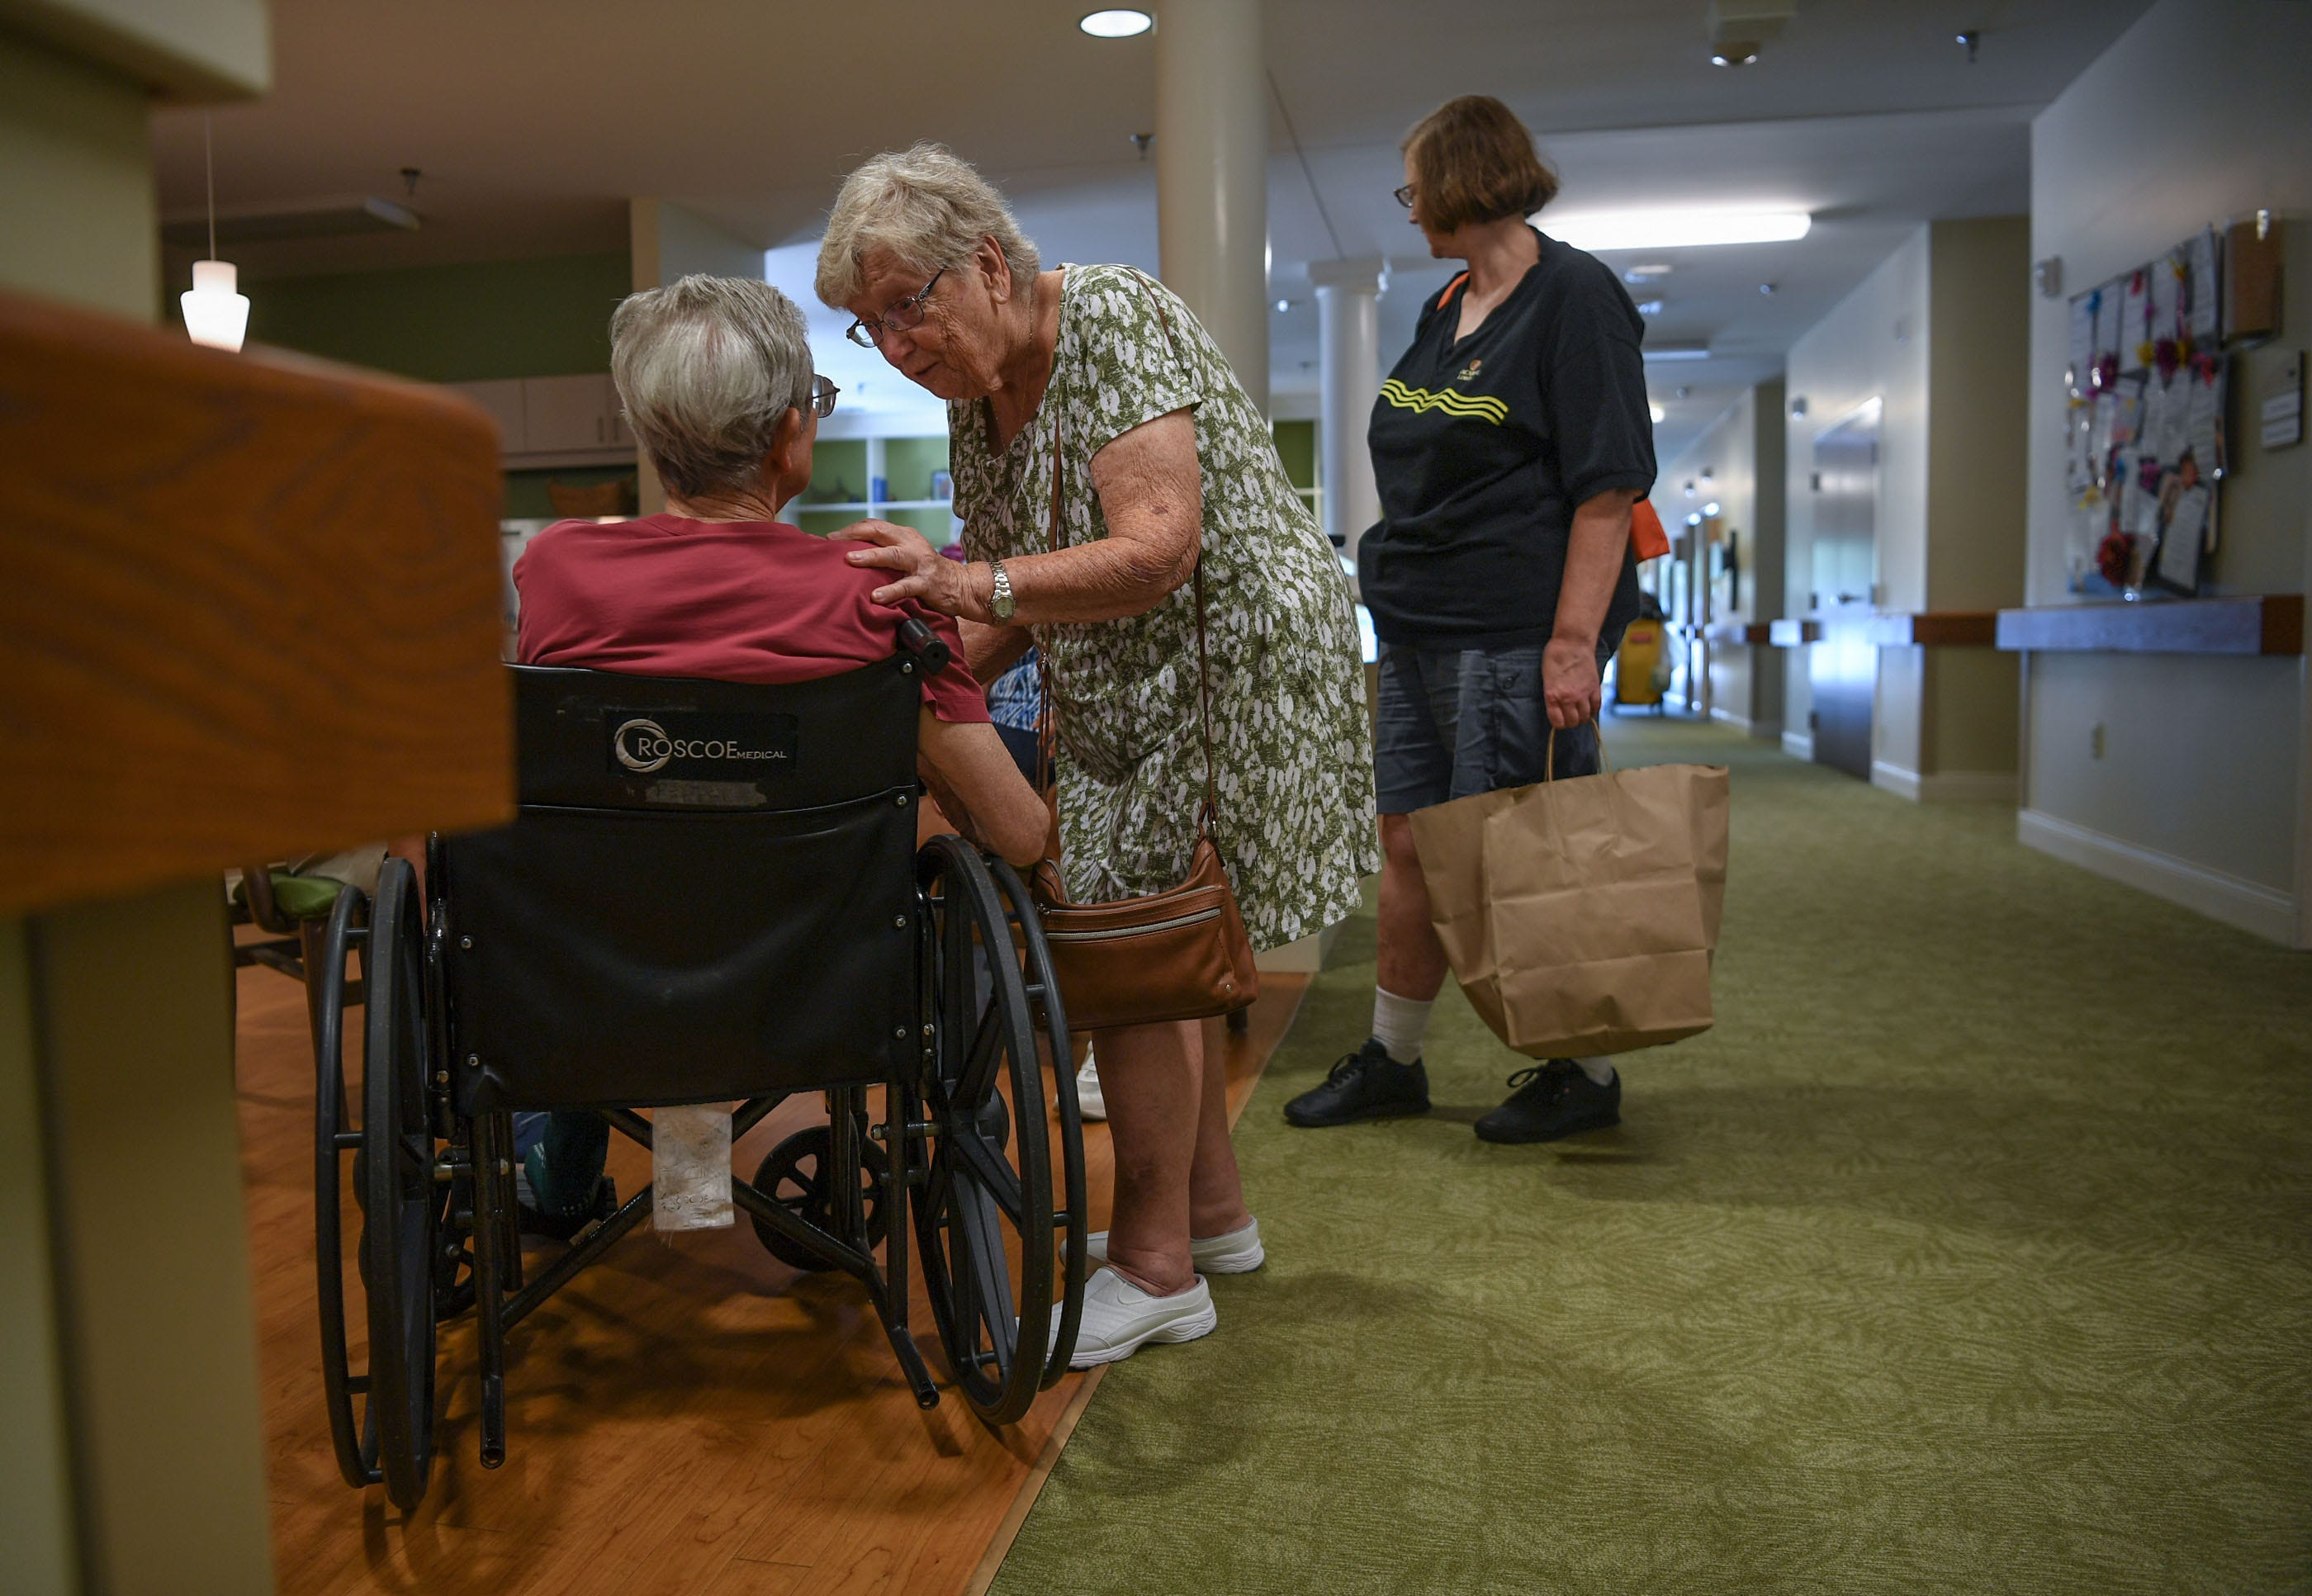 Kay Torrens, middle, stands with her husband Leo Torrens before leaving him at the Trinity Grove Nursing Home in Wilmington on Sept. 12, 2018. Hurricane Florence is expected to reach Wilmington on Thursday night.